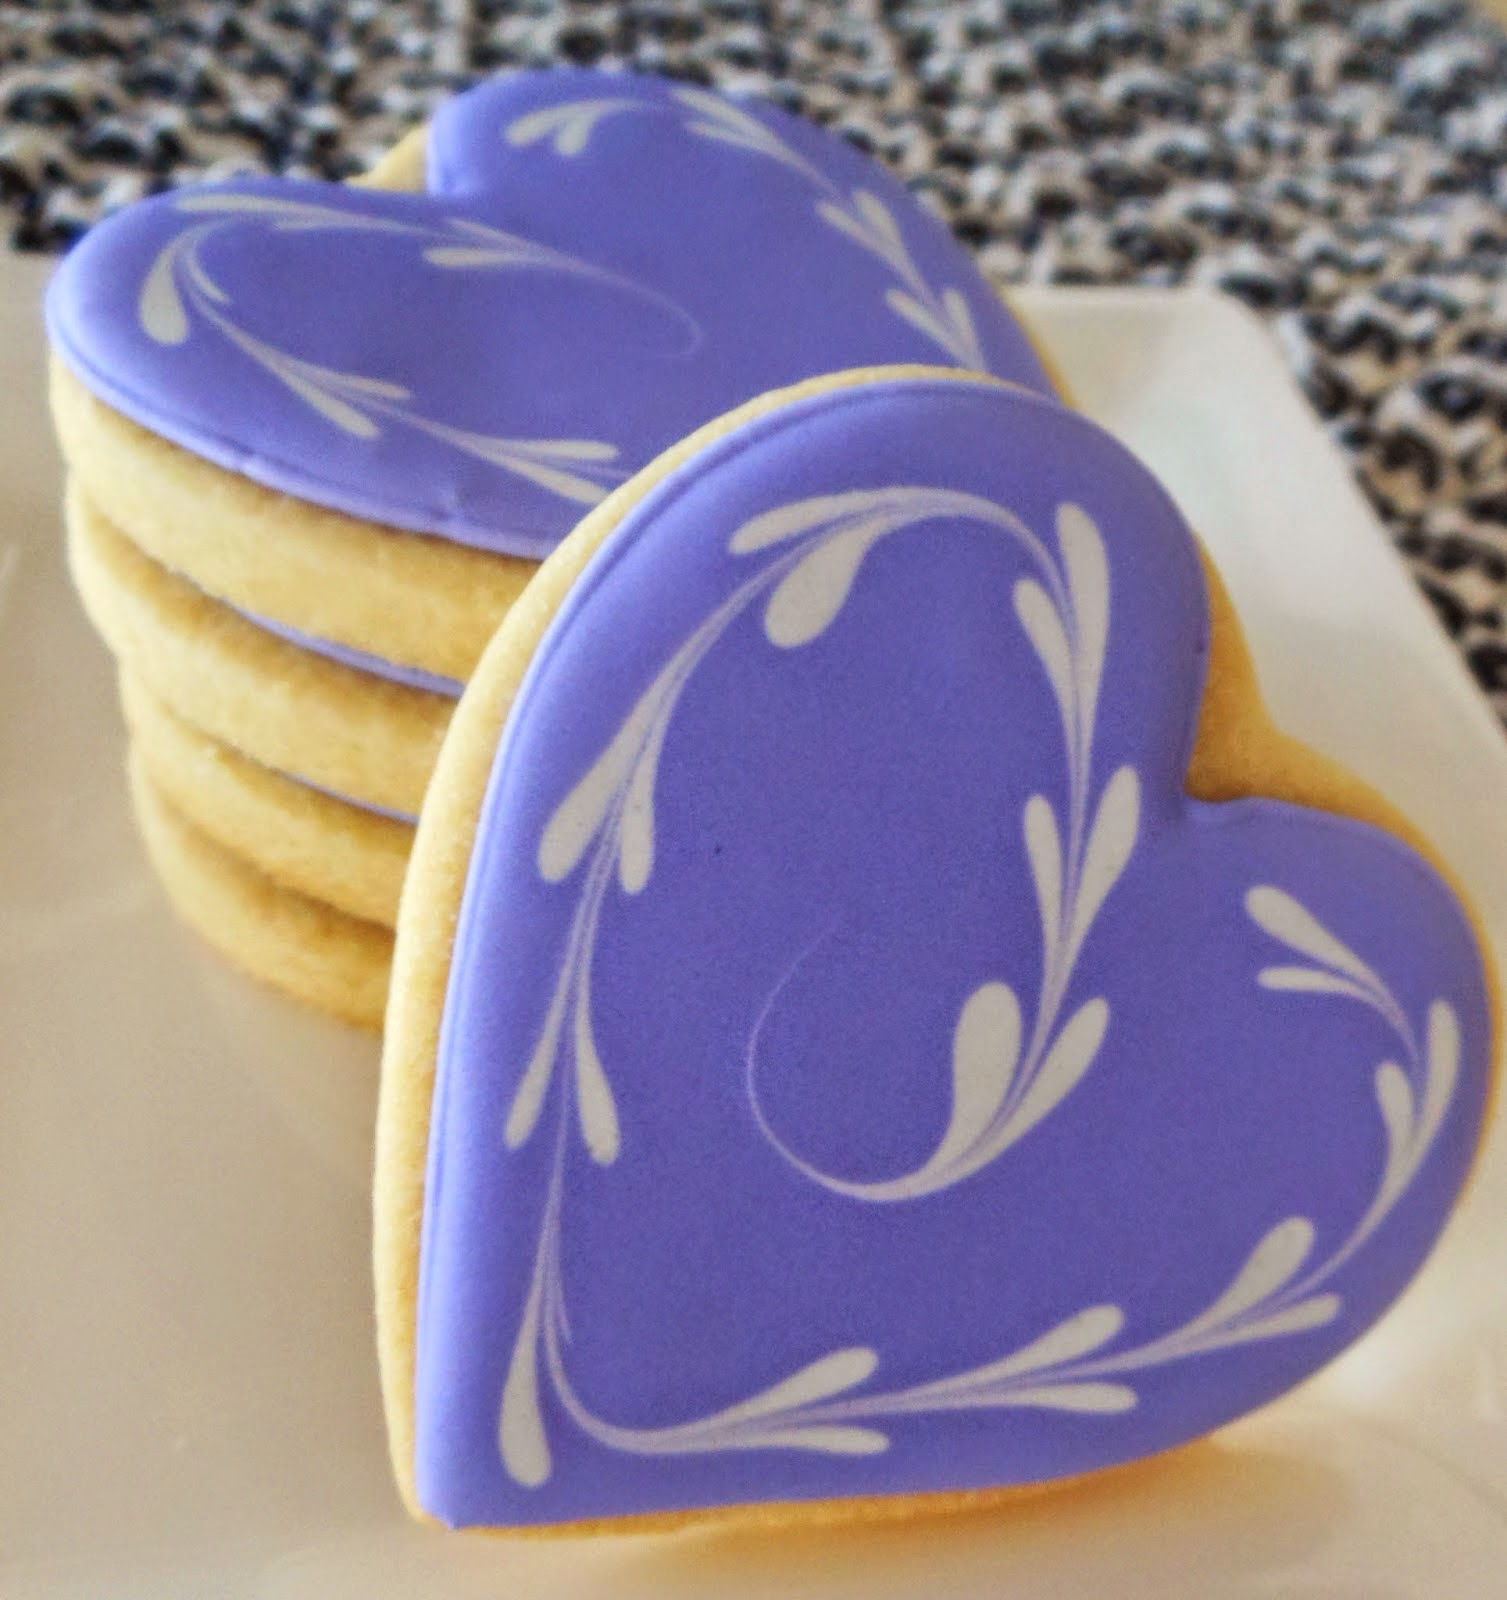 heart-shortbread-iced cookies